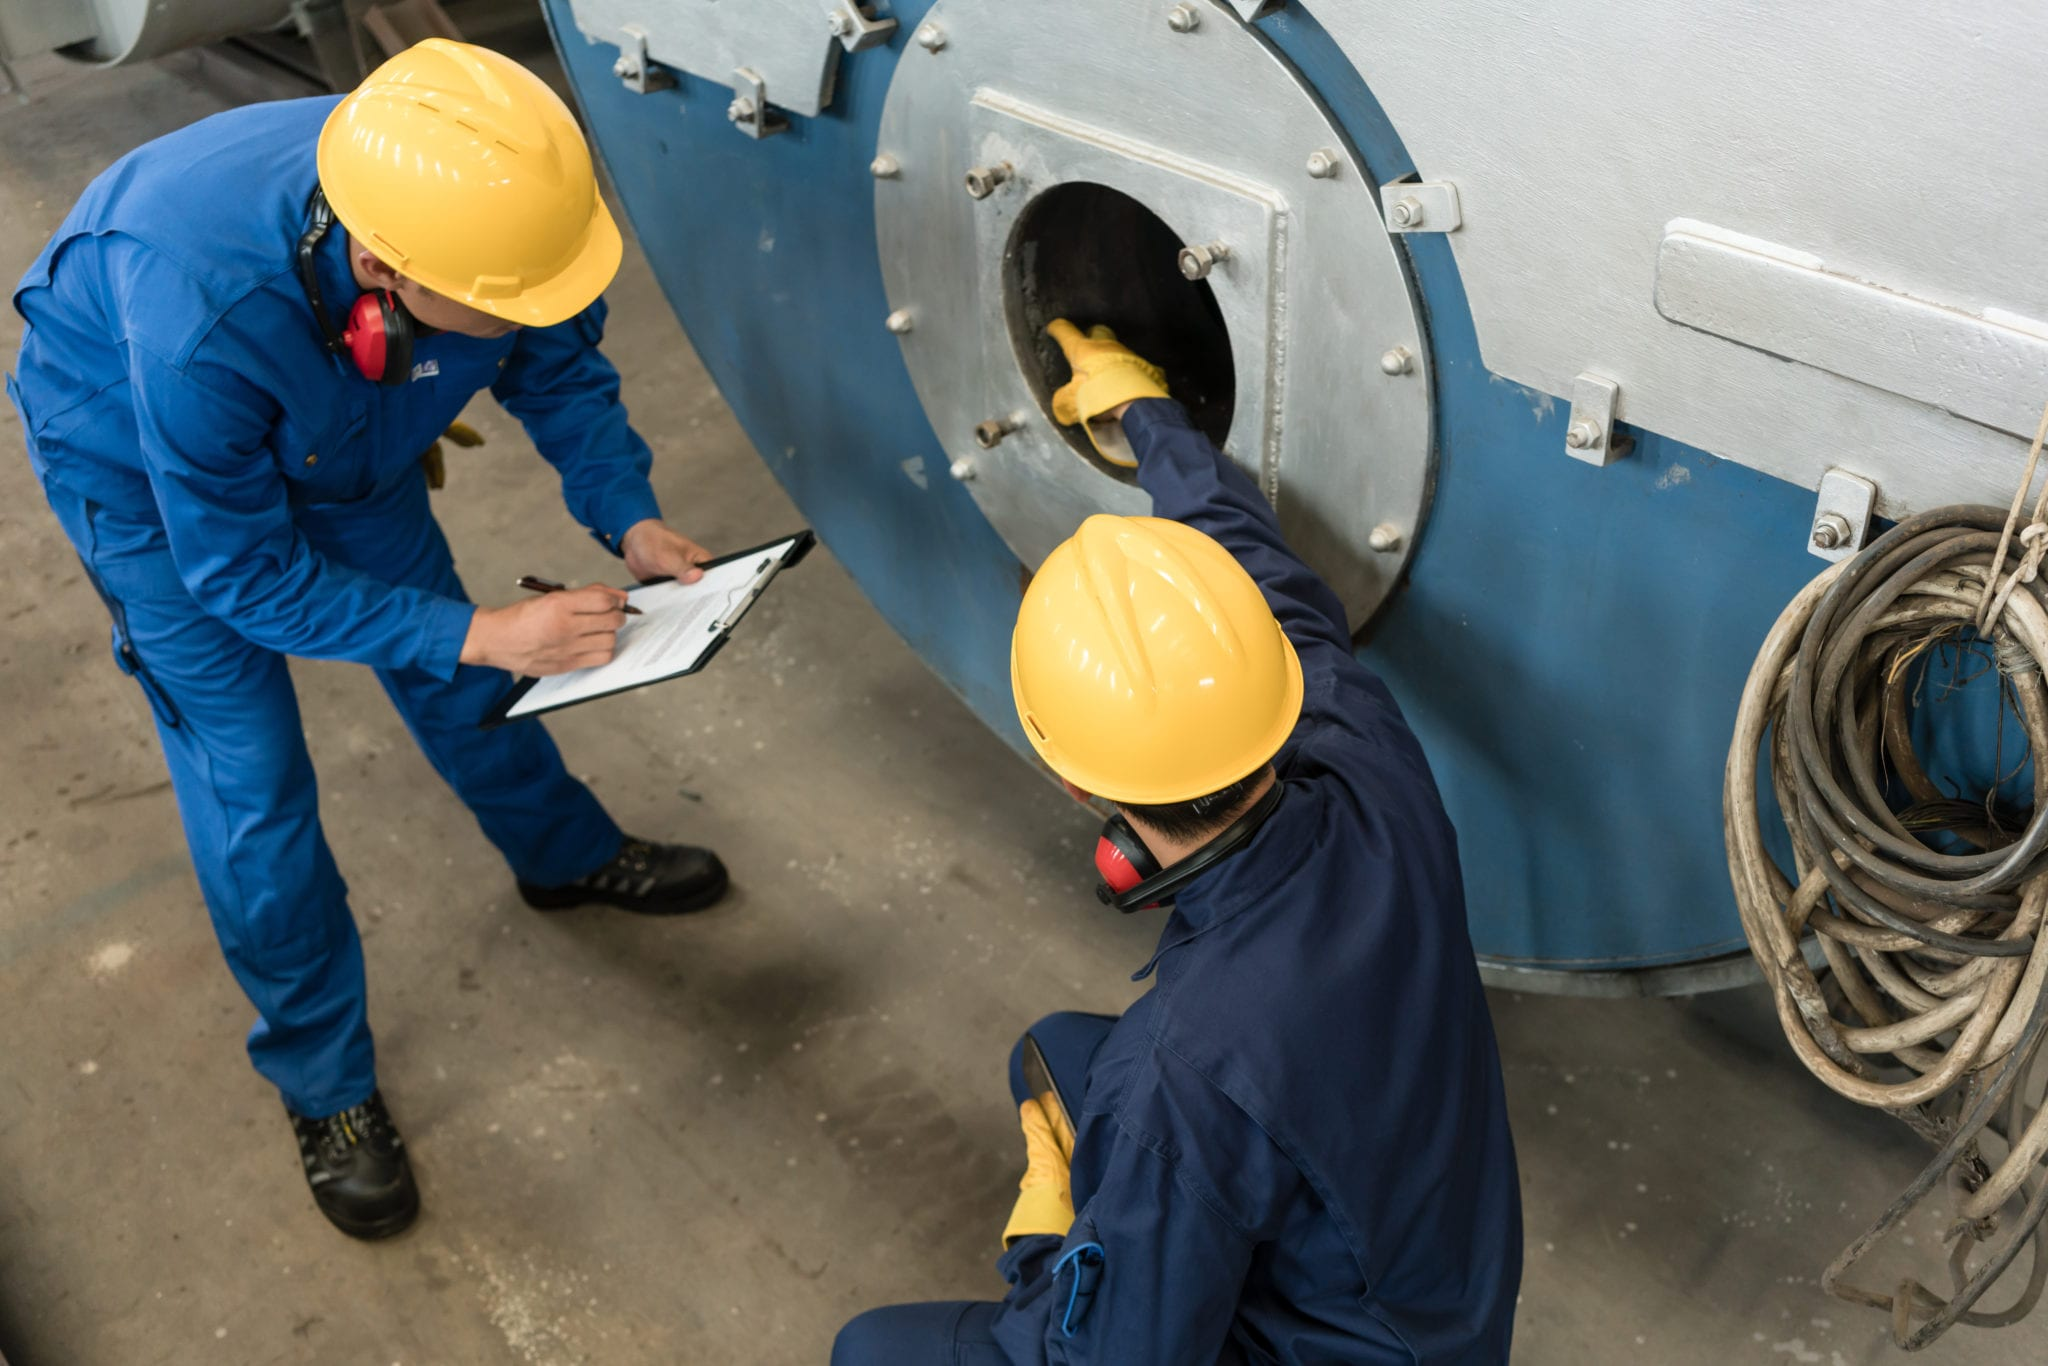 Employee Engagement Impacts Workplace Safety